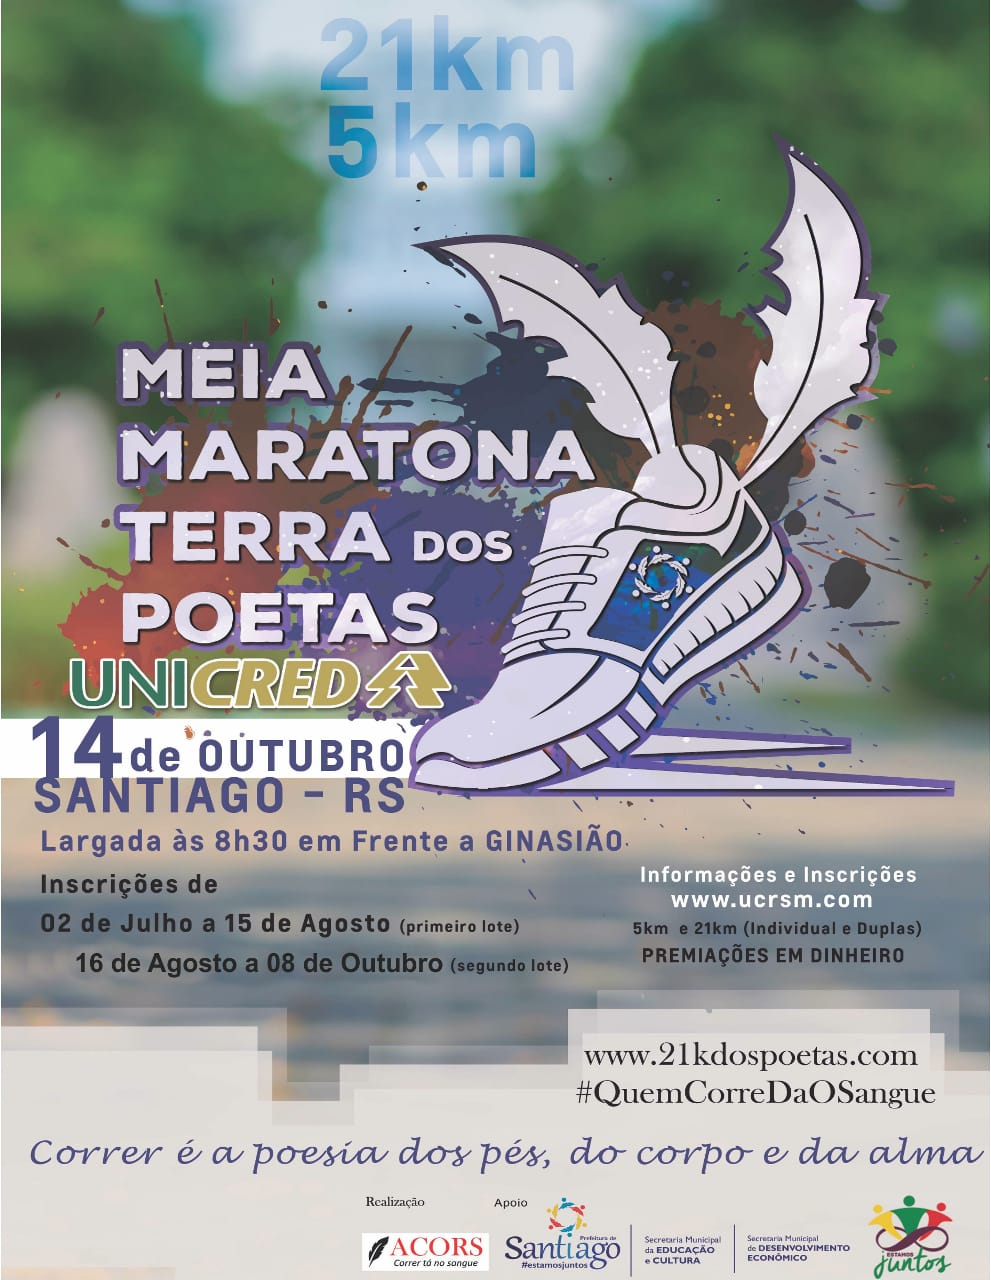 Meia Maratona Terra dos Poetas